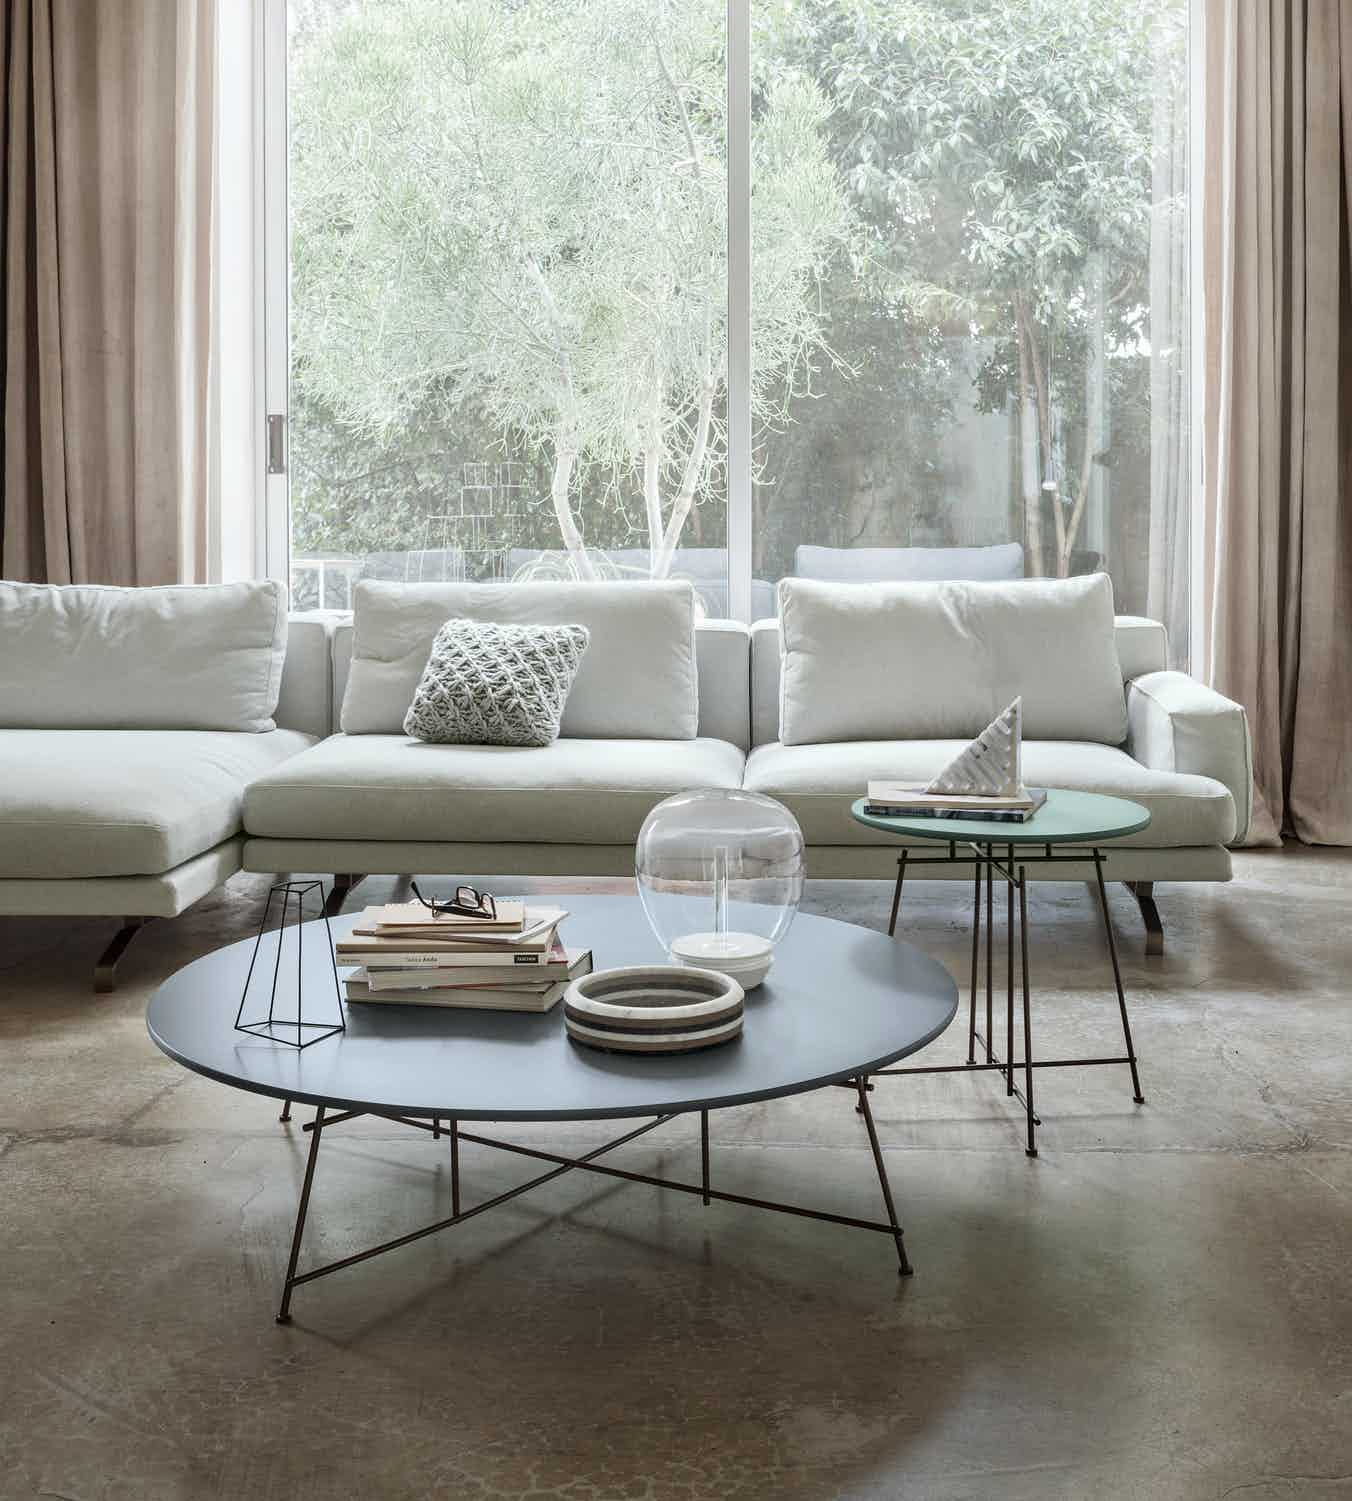 Lema-furniture-mr-zheng-side-table-insitu-duo-haute-living